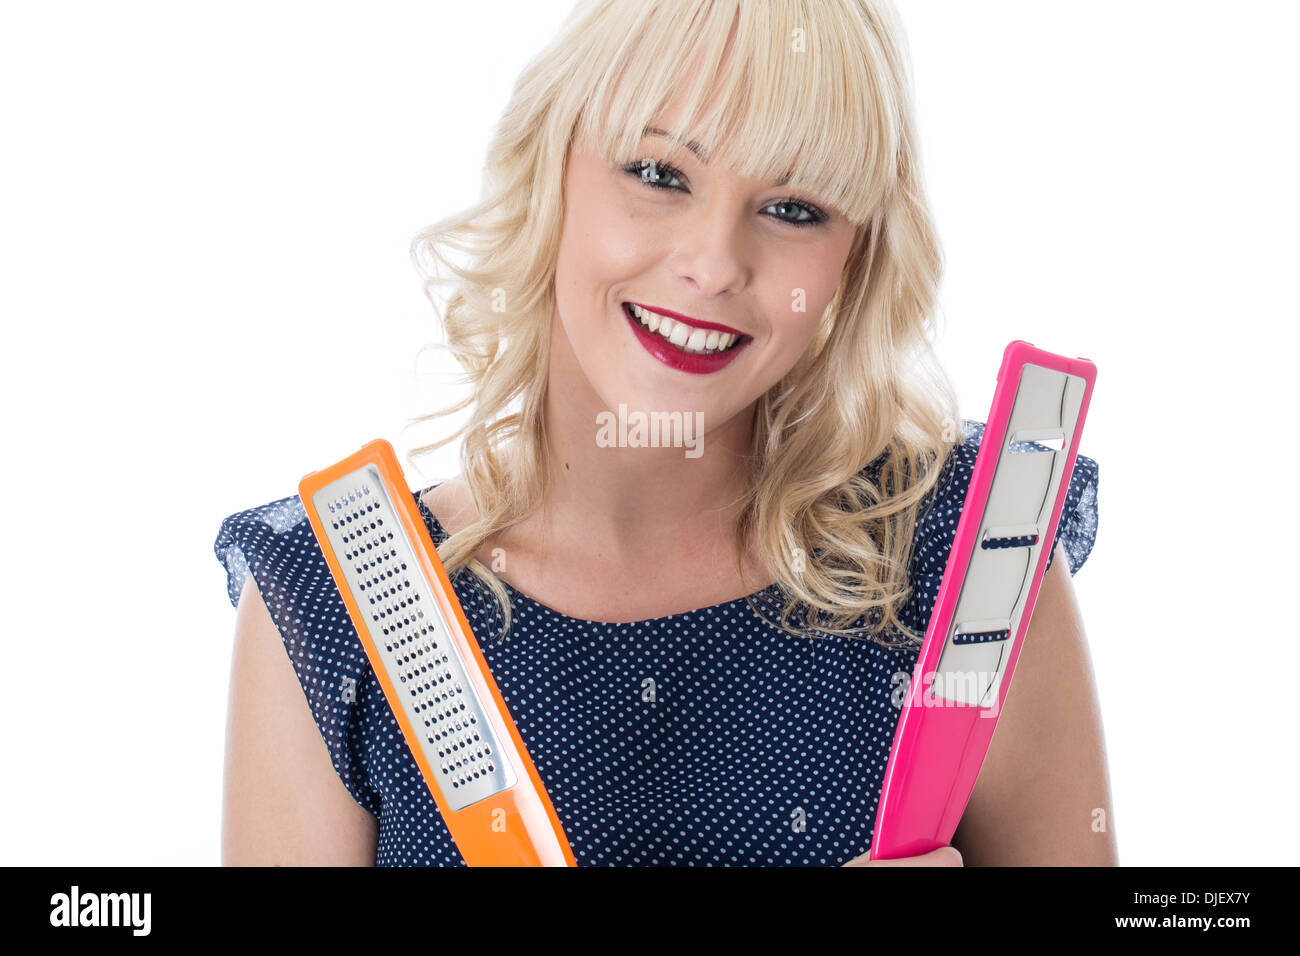 Model Released. Attractive Young Woman Holding Kitchen Utensils Stock Photo